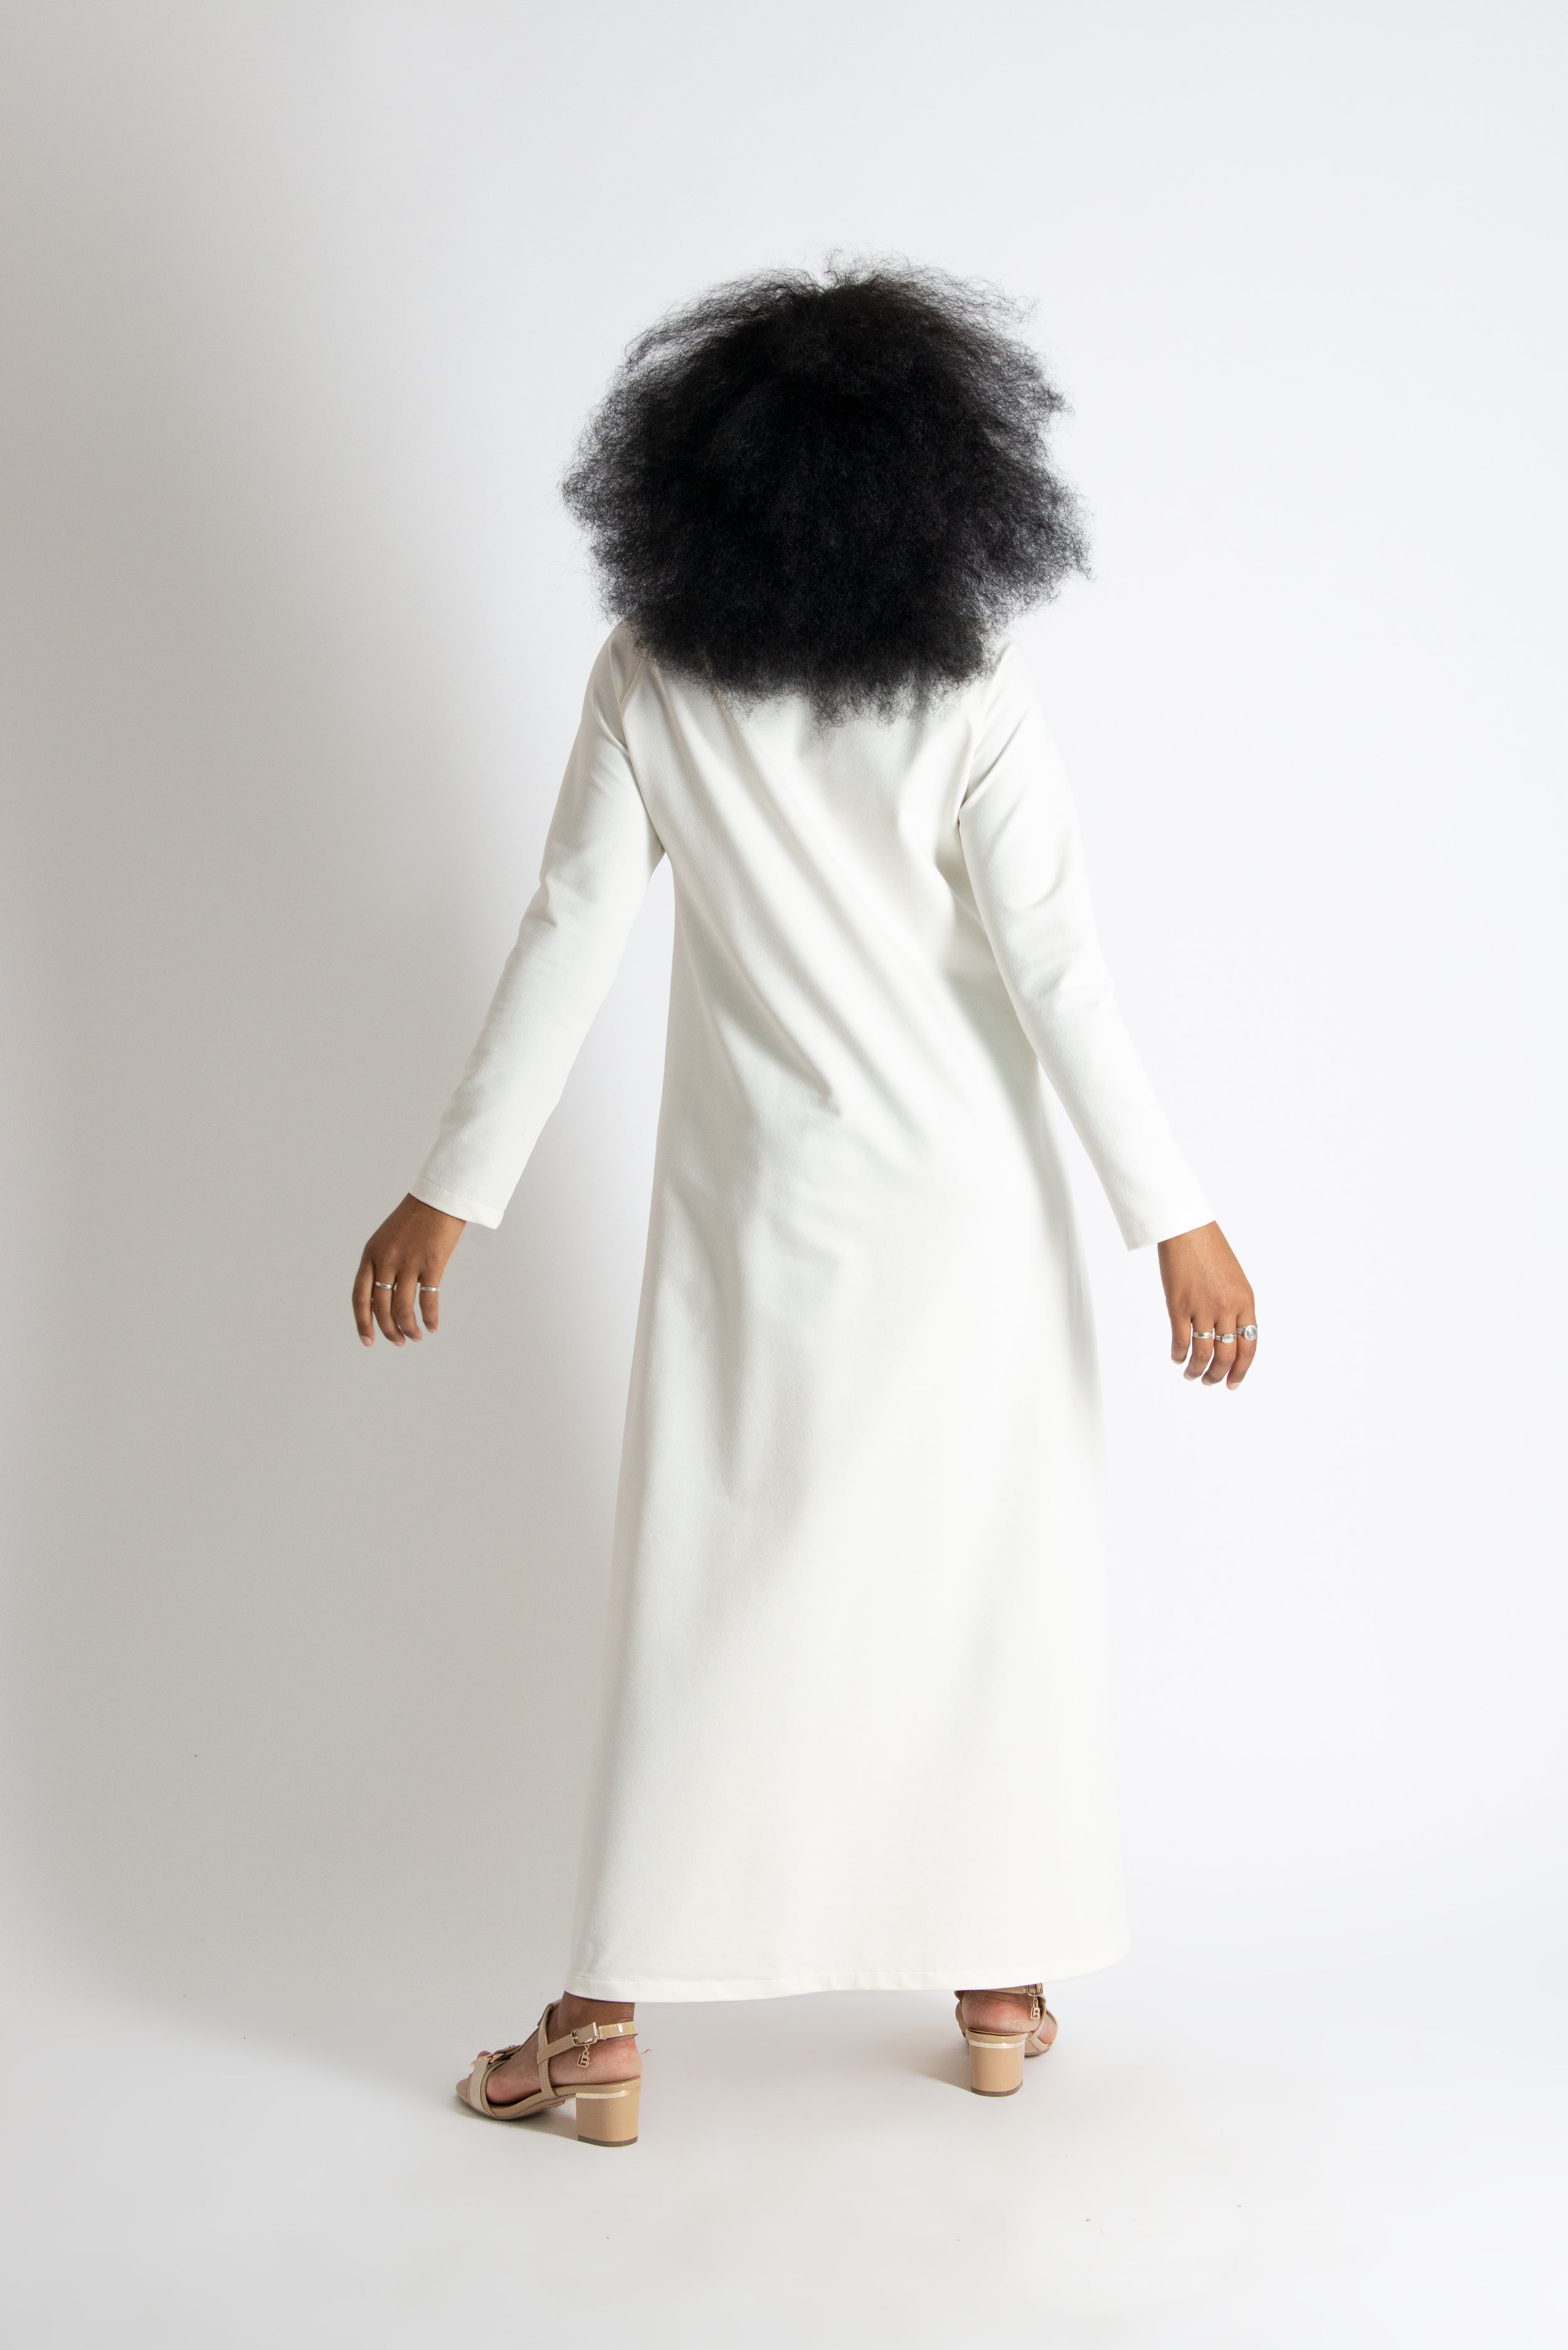 Winter Off White Cotton dress